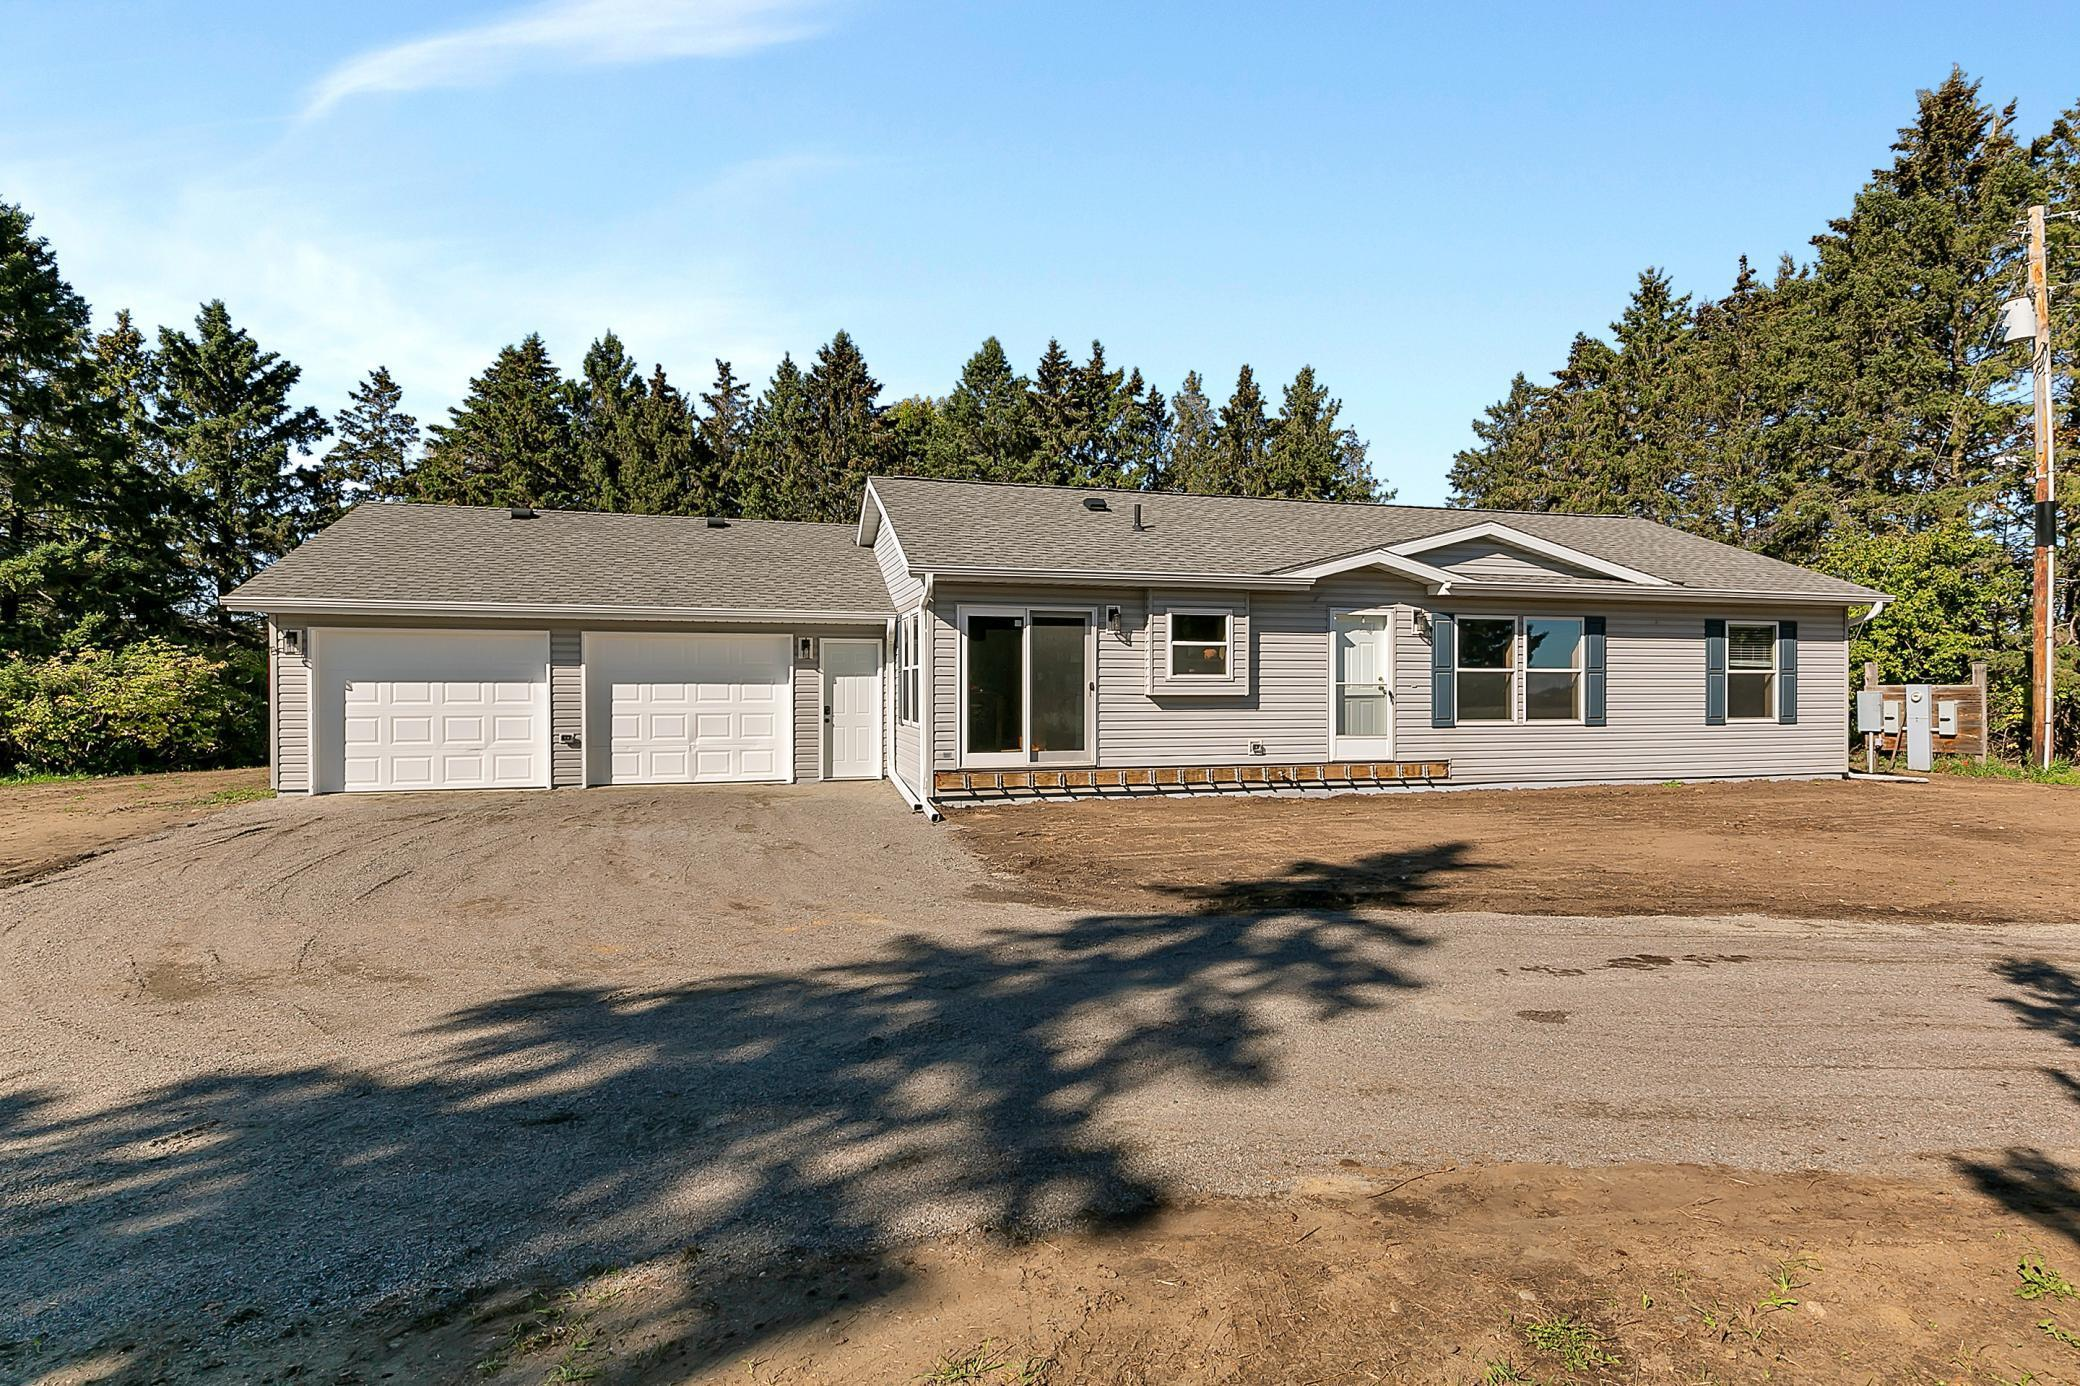 One level living at it's finest! This 3 bedroom 3 bathroom country home sits on a 2.76 acre corner lot just a few miles outside of Holdingford. Master suite with walk in closet, Vinyl plank flooring and a attached 2 stall heated garage are just a few of the great things this home has to offer! Set up your private showing  today!